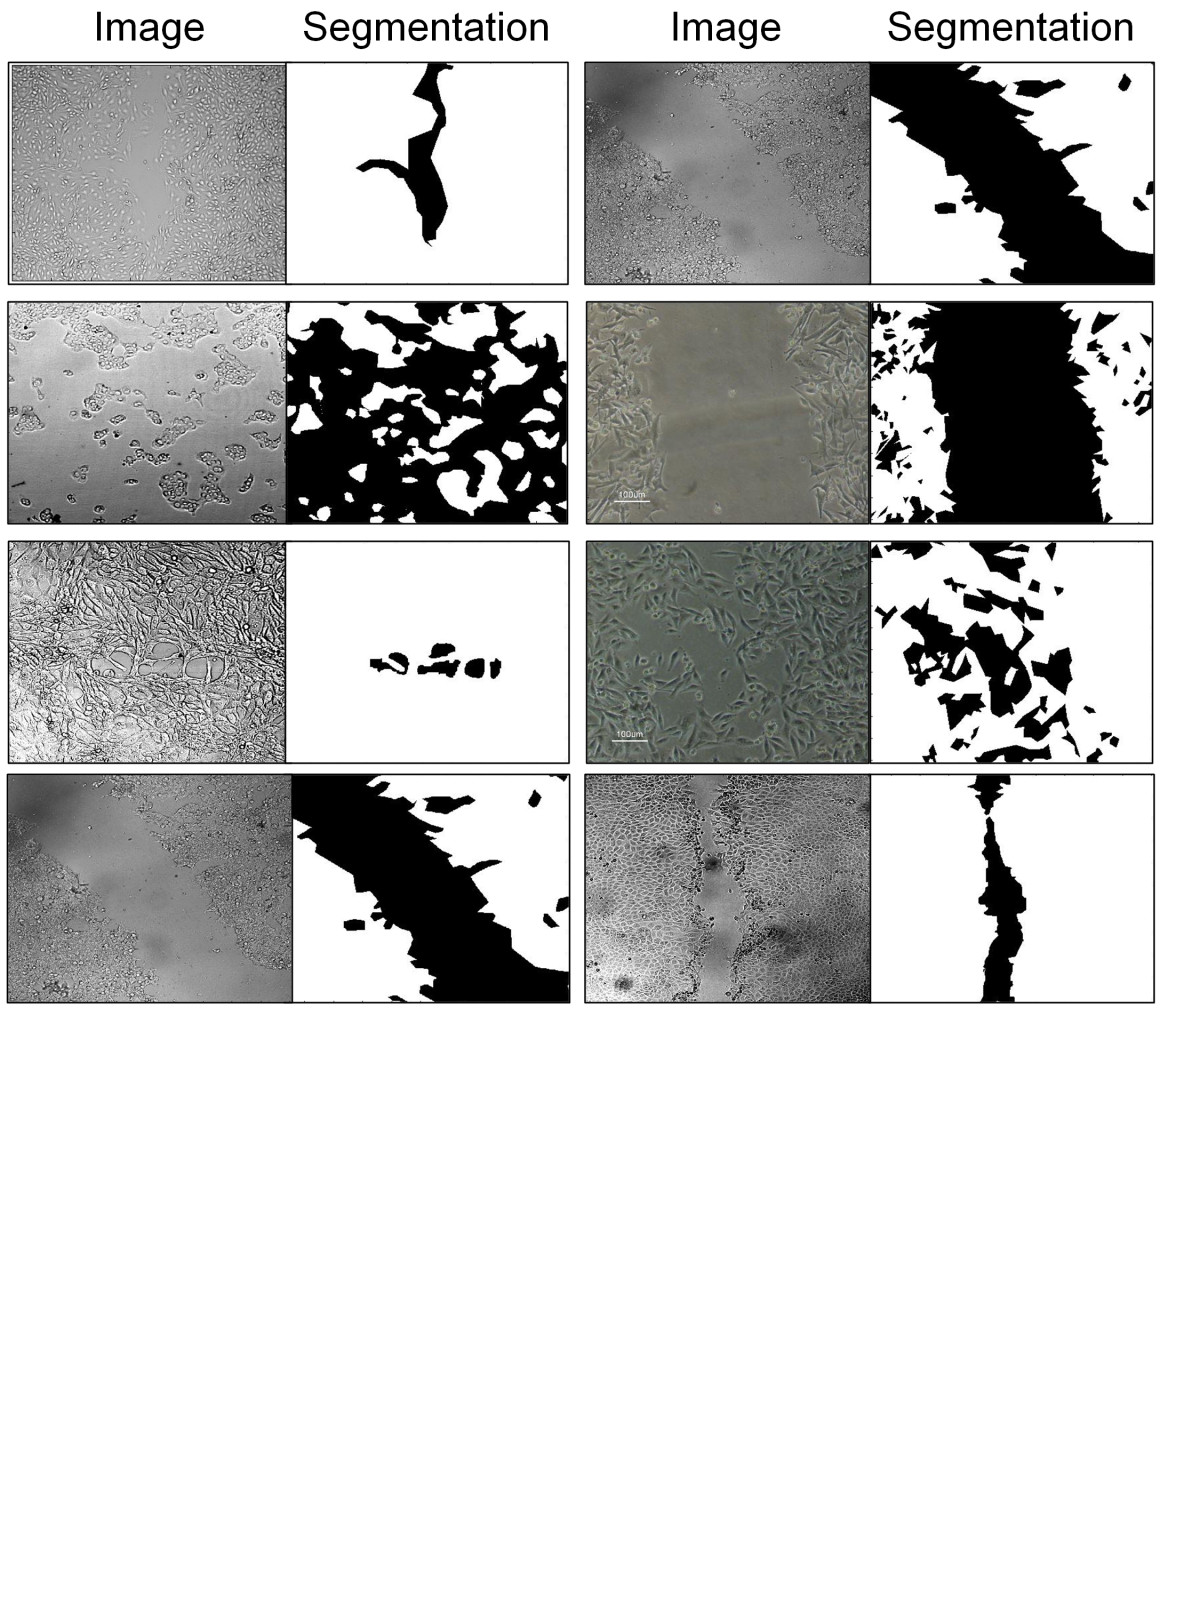 https://static-content.springer.com/image/art%3A10.1186%2F1471-2105-14-319/MediaObjects/12859_2013_Article_6193_Fig1_HTML.jpg